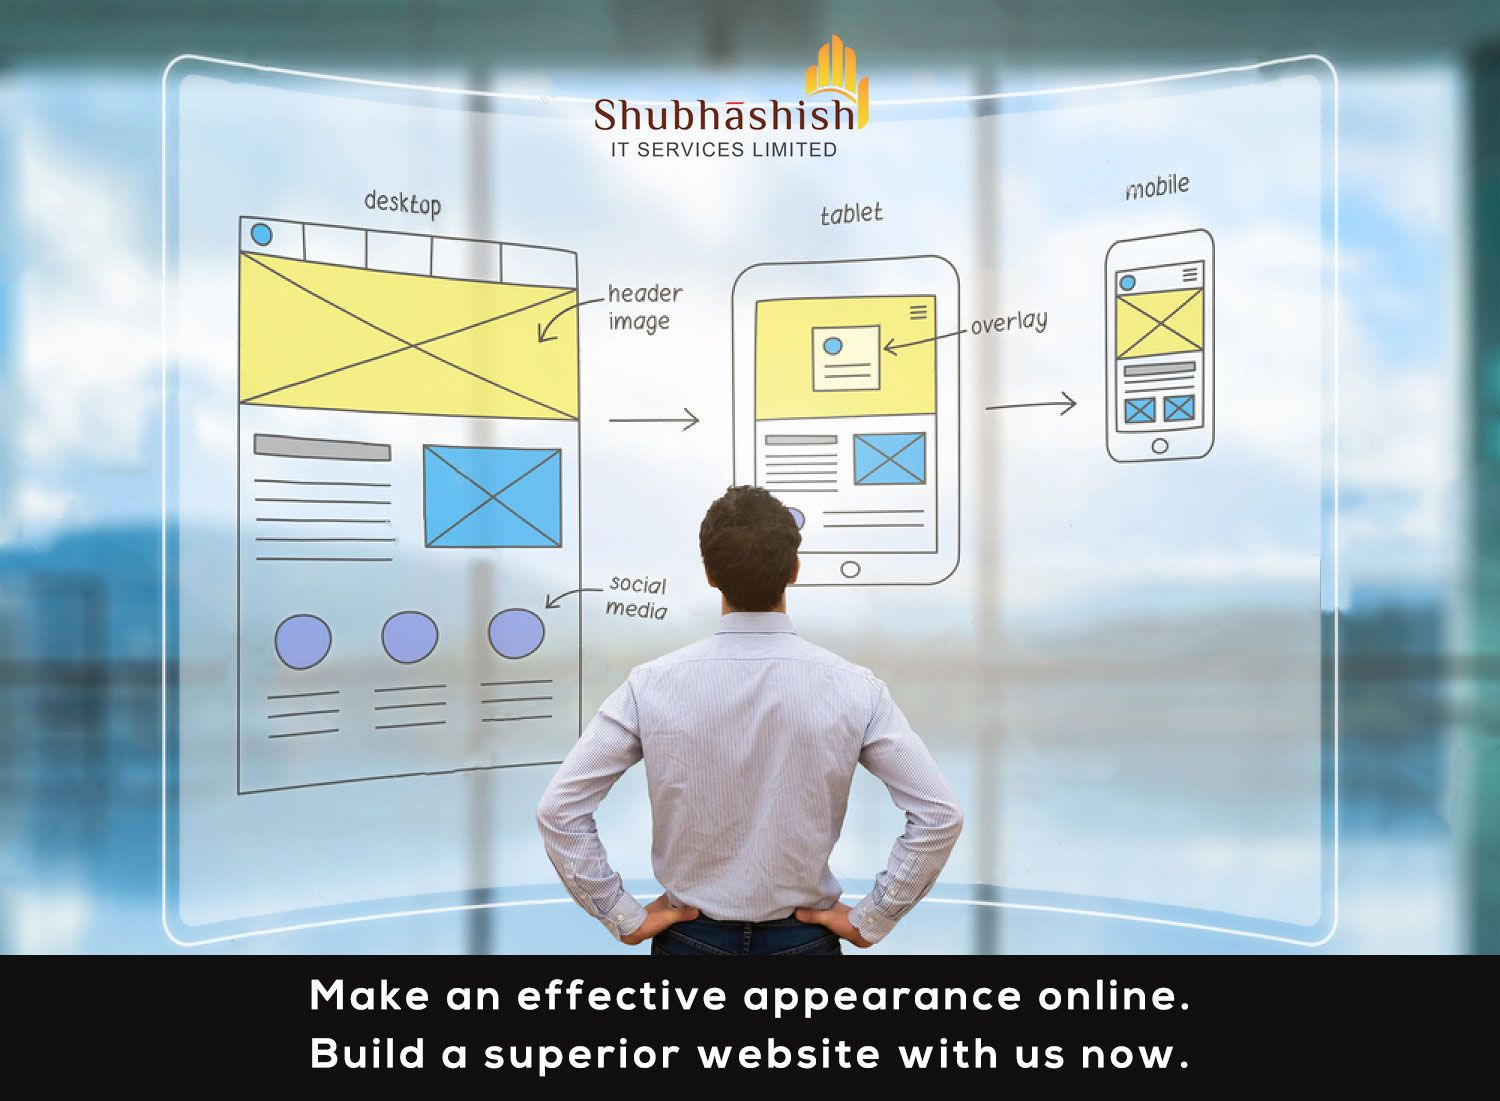 Make an effective appearance online. Build a superior